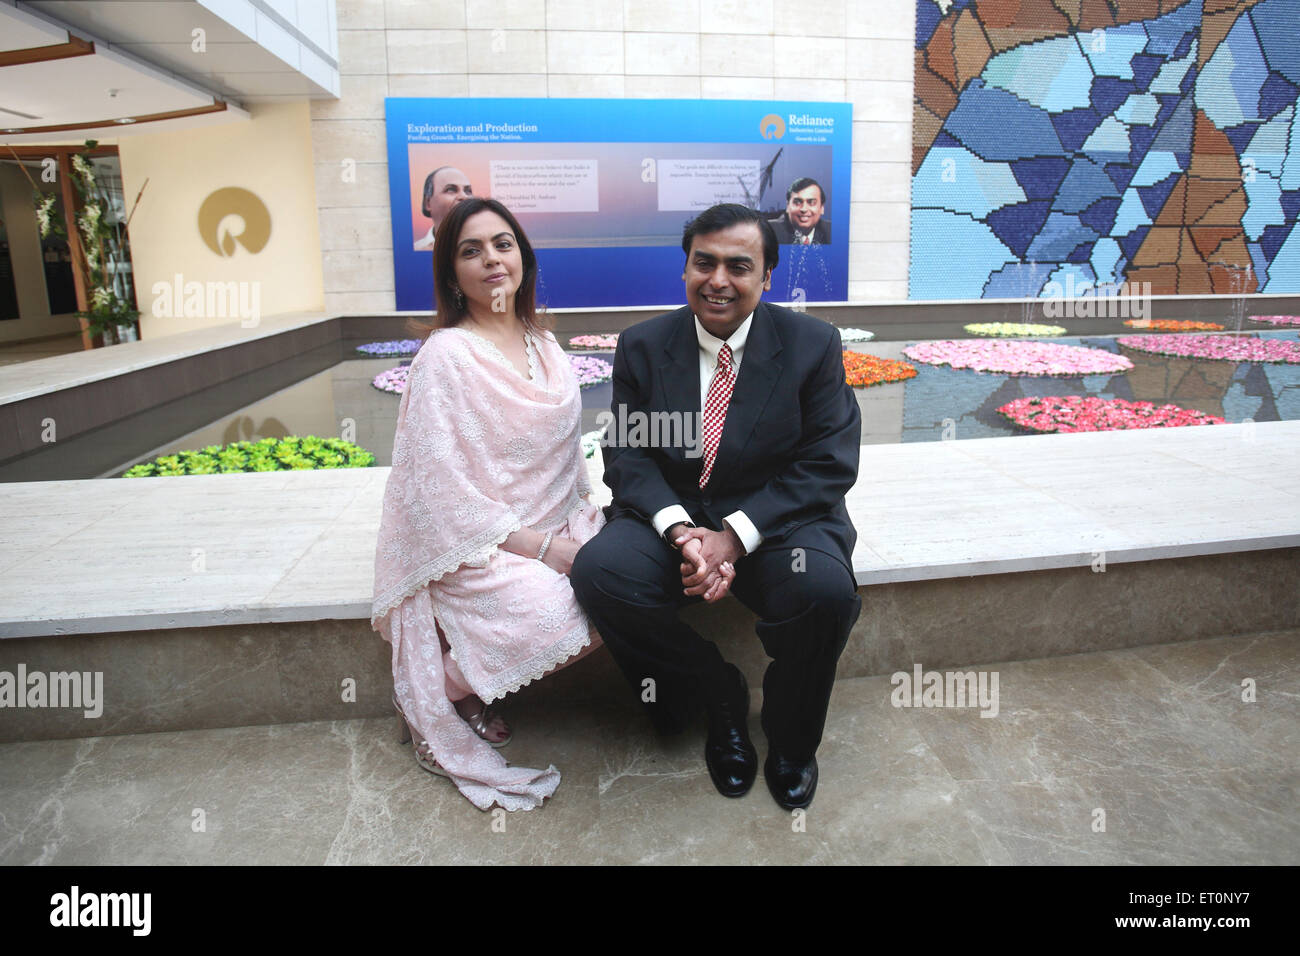 Chairman and managing director of reliance Industries Mukesh Ambani and Neeta Ambani  NOMR - Stock Image